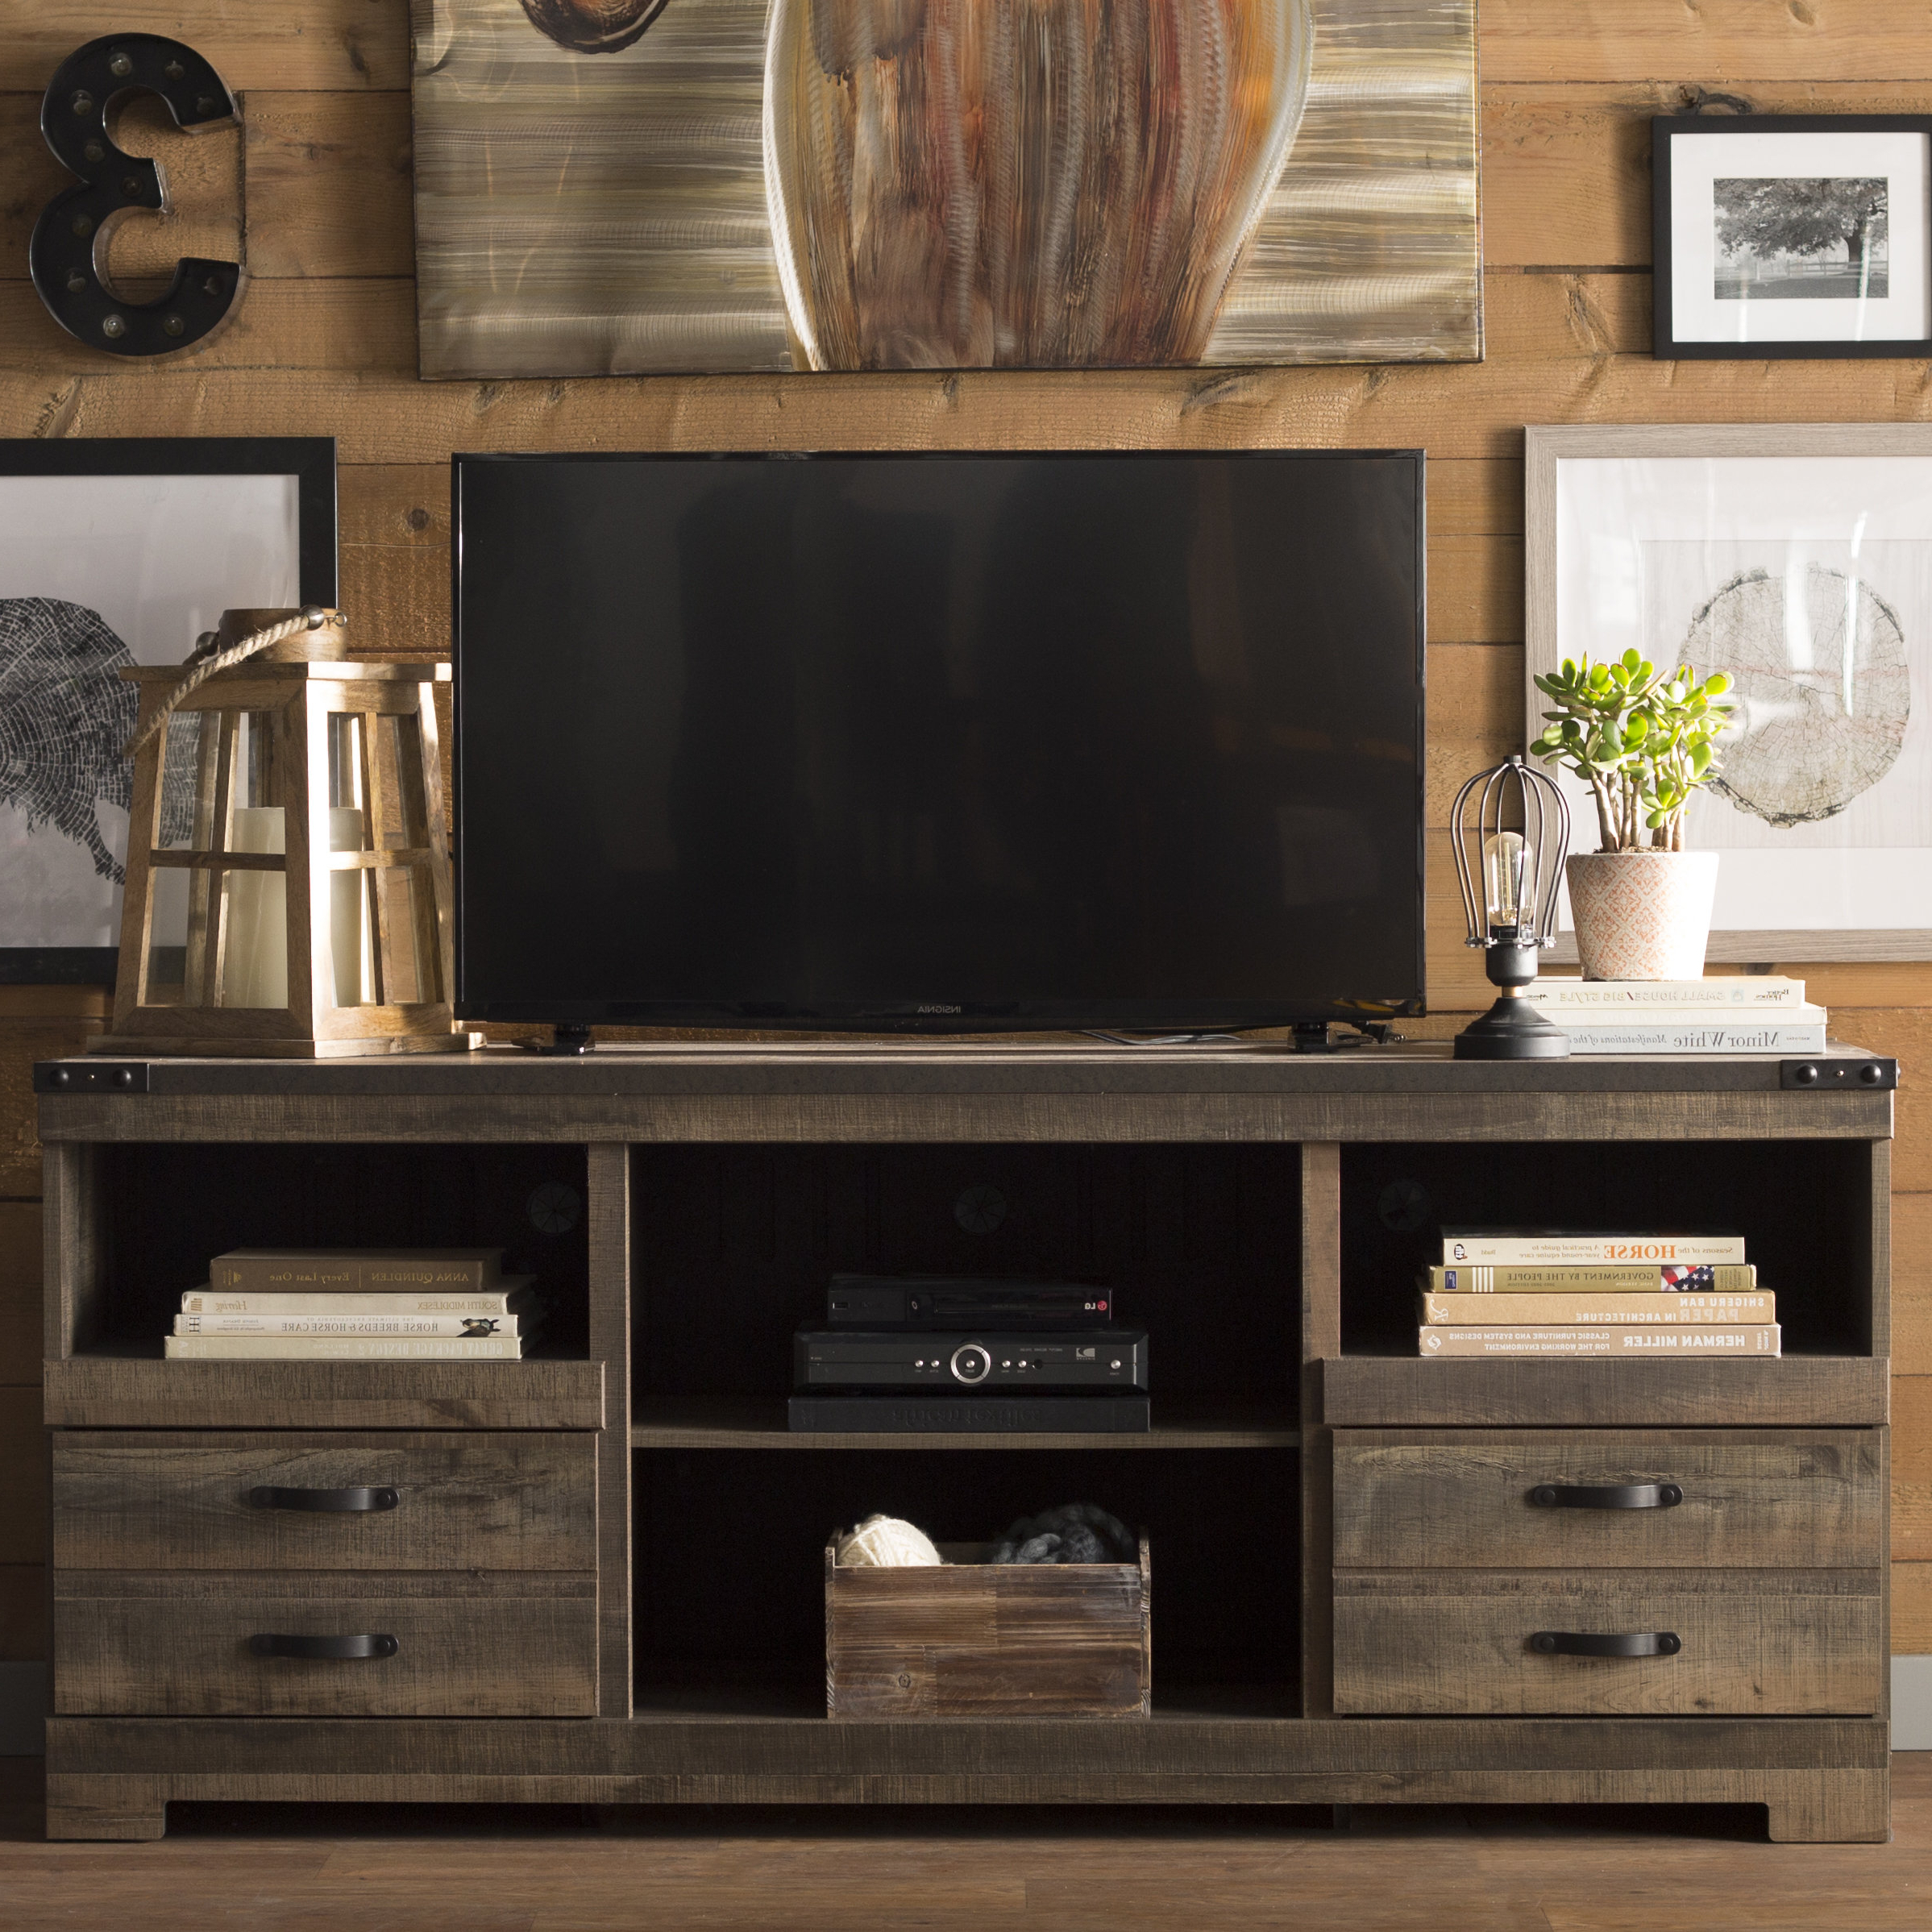 60 69 Inches Tv Stands | Birch Lane With Regard To Edwin Grey 64 Inch Tv Stands (Gallery 17 of 20)